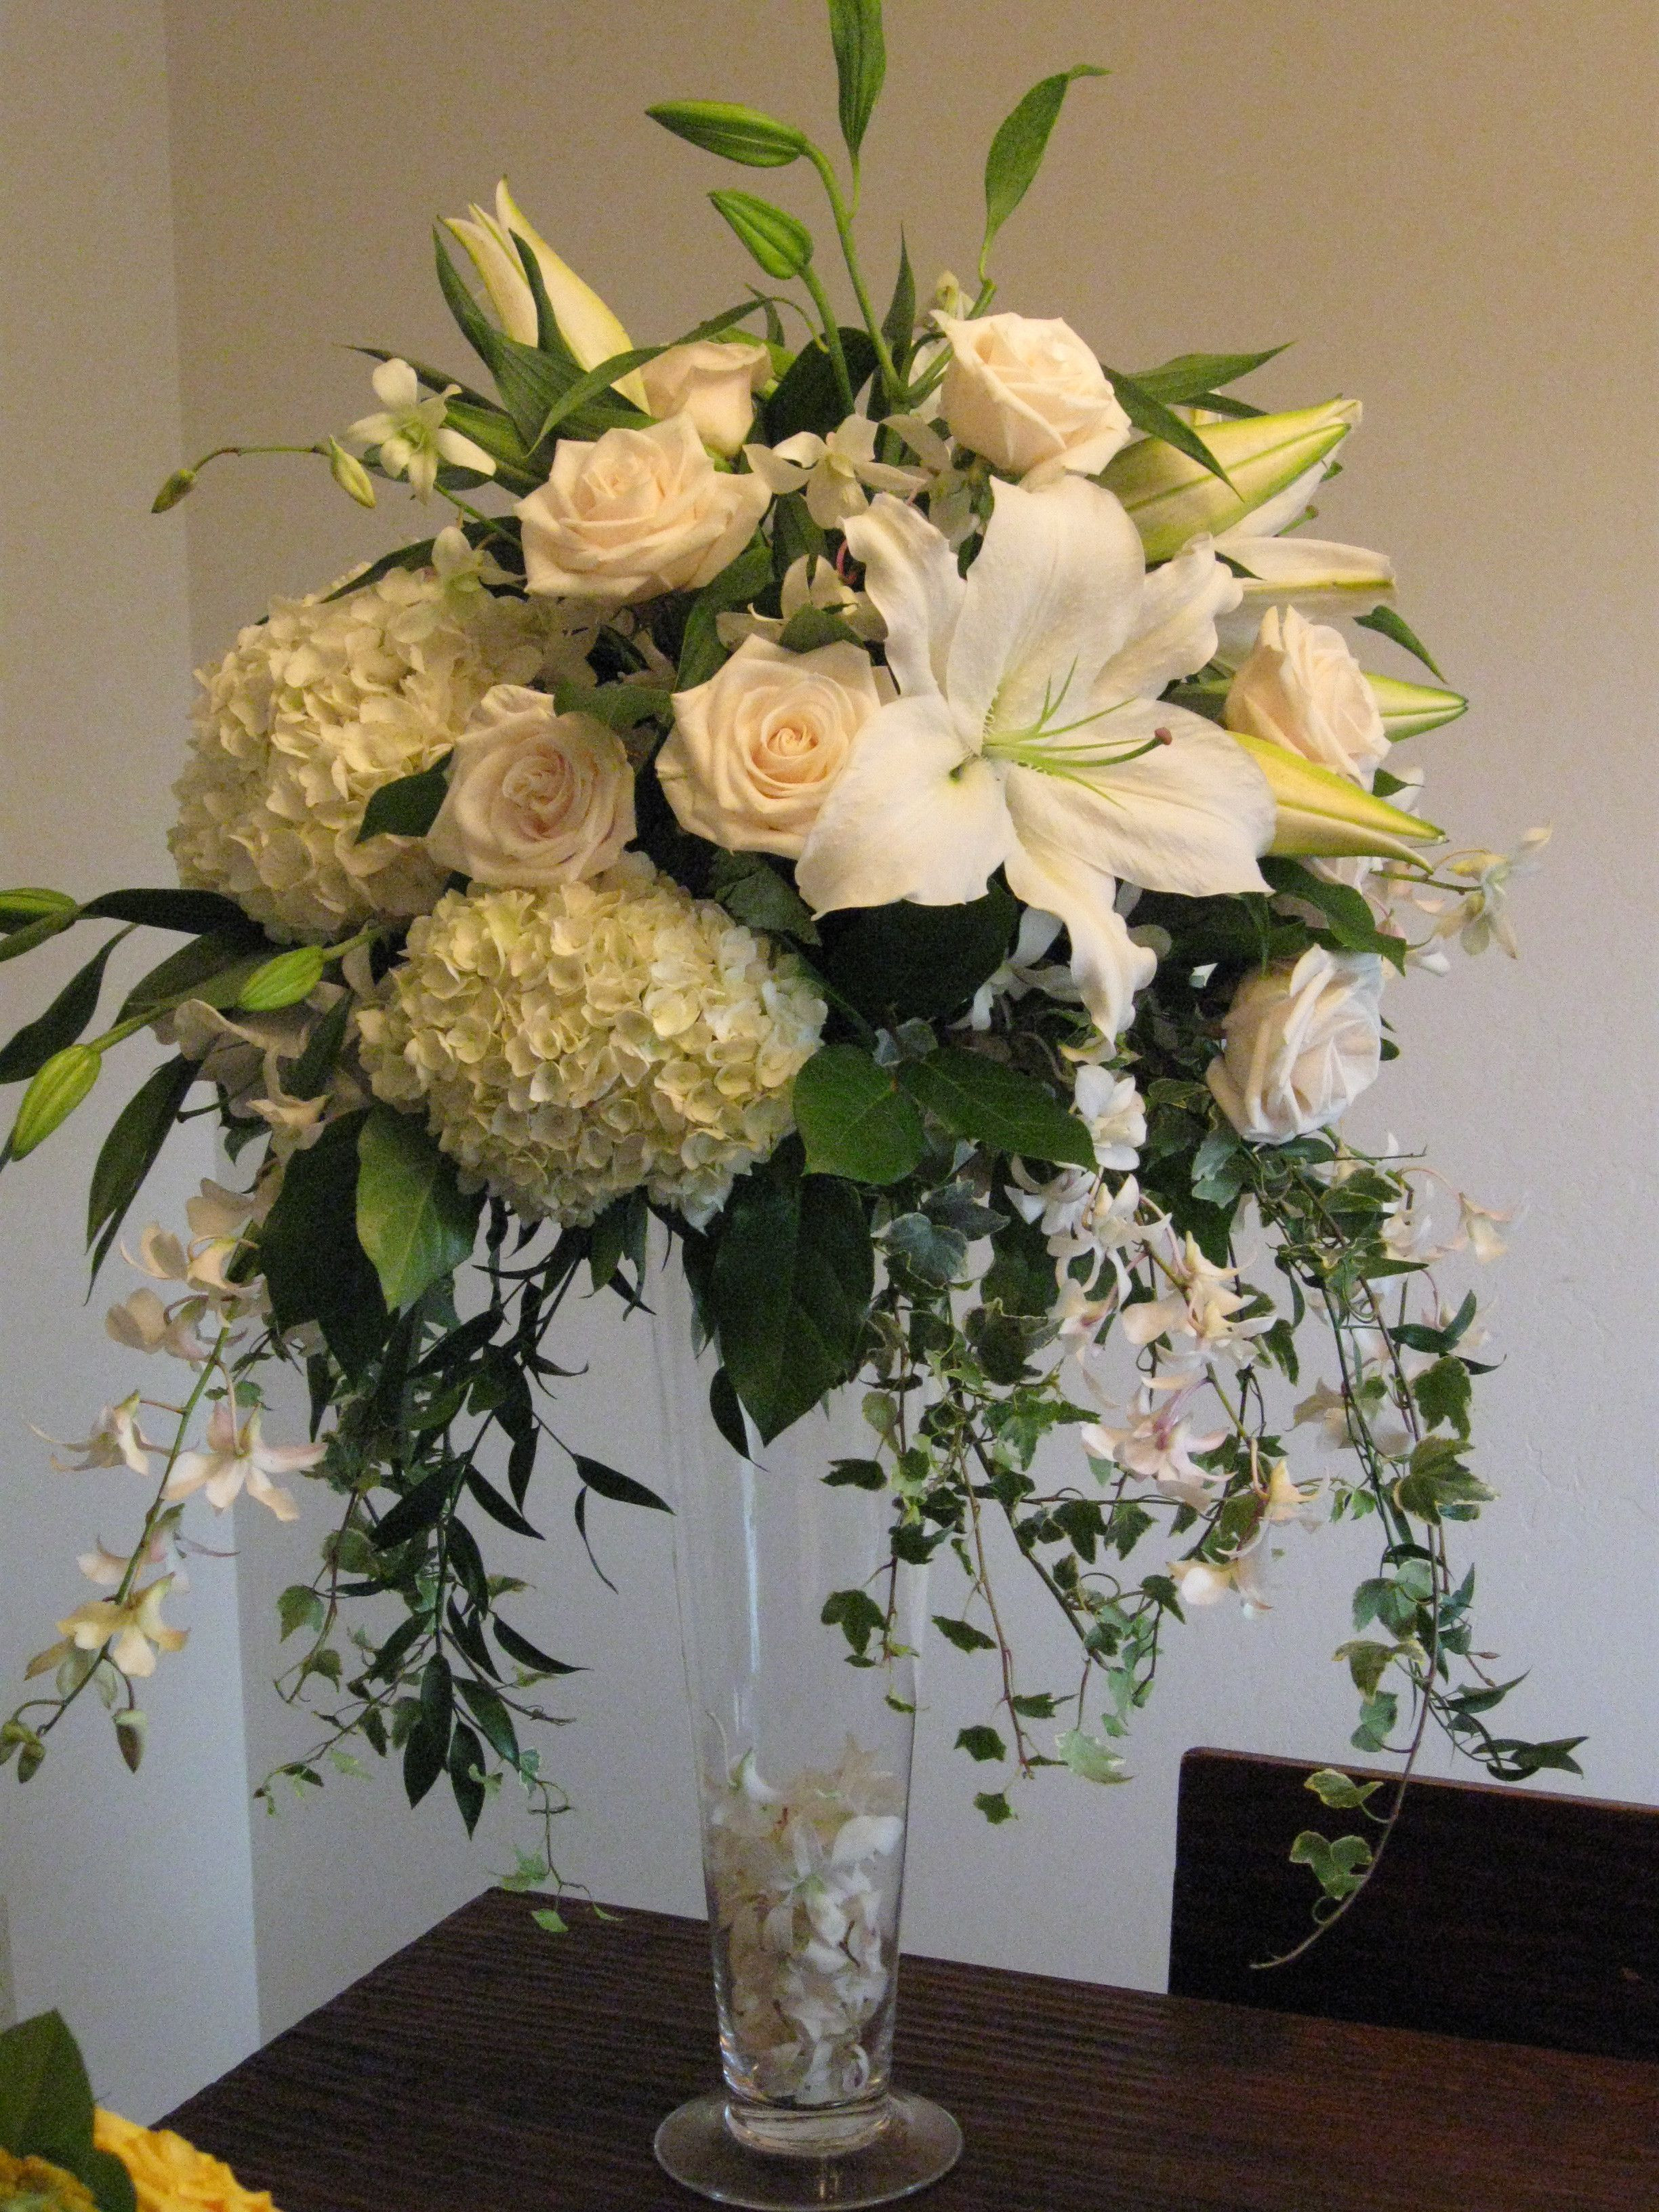 pilsner vases wholesale of centerpiece white roses hydrangea orchids tall vendela the throughout centerpiece white roses hydrangea orchids tall vendela the blue orchid dendrobium ivy casabla